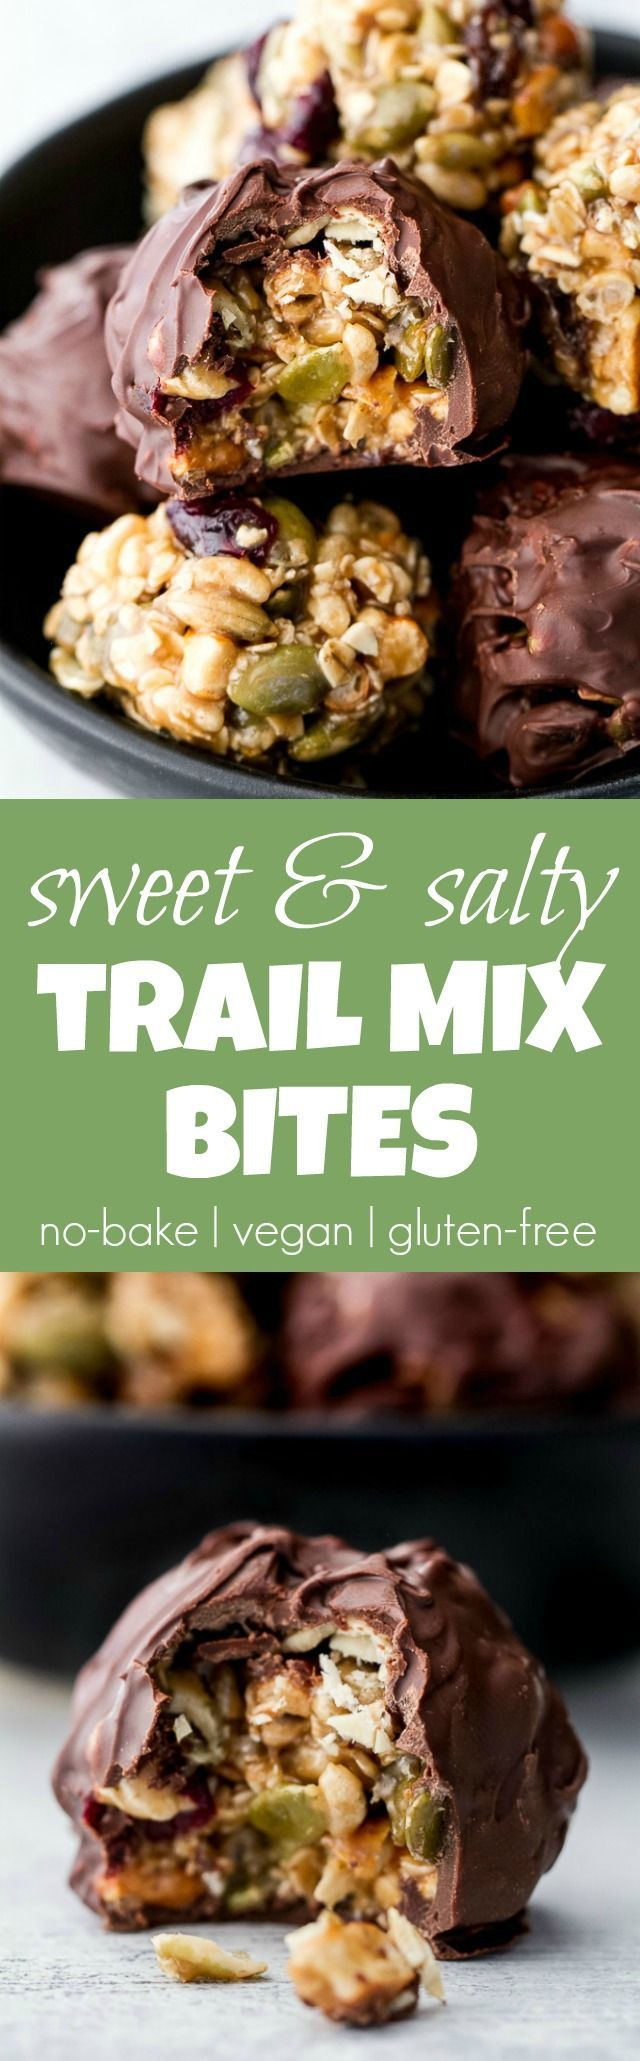 Sweet, salty, chewy, and crisp, these no-bake trail mix bites are sure to satisfy any craving! Gluten-free, nut-free, and vegan, they're a healthy snack that anyone can enjoy! | http://runningwithspoons.com